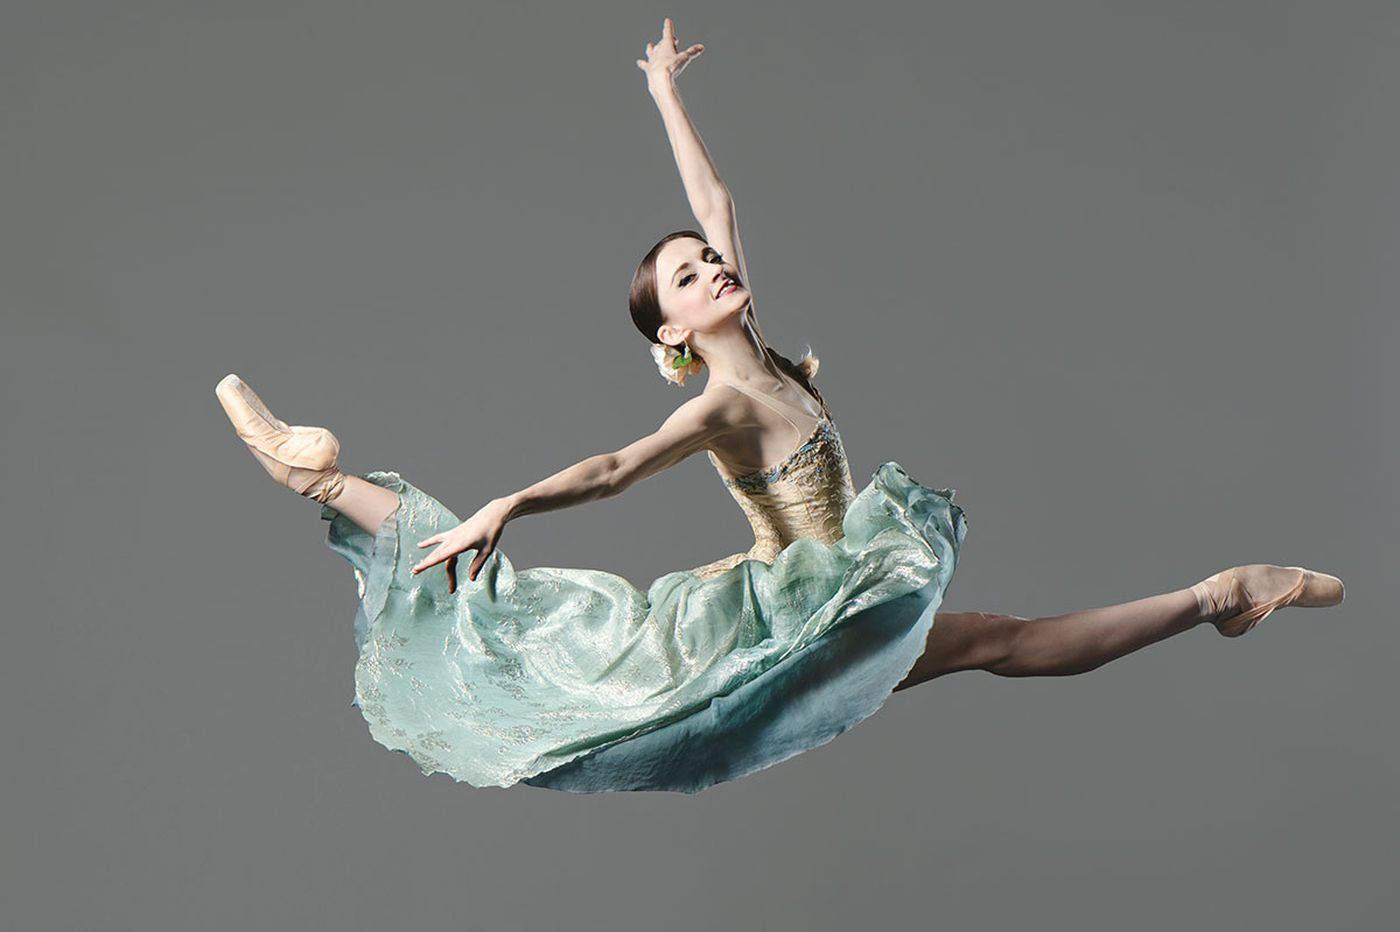 New Dance Moves 2020.Pa Ballet Will Dance Controversial La Bayadere In Its